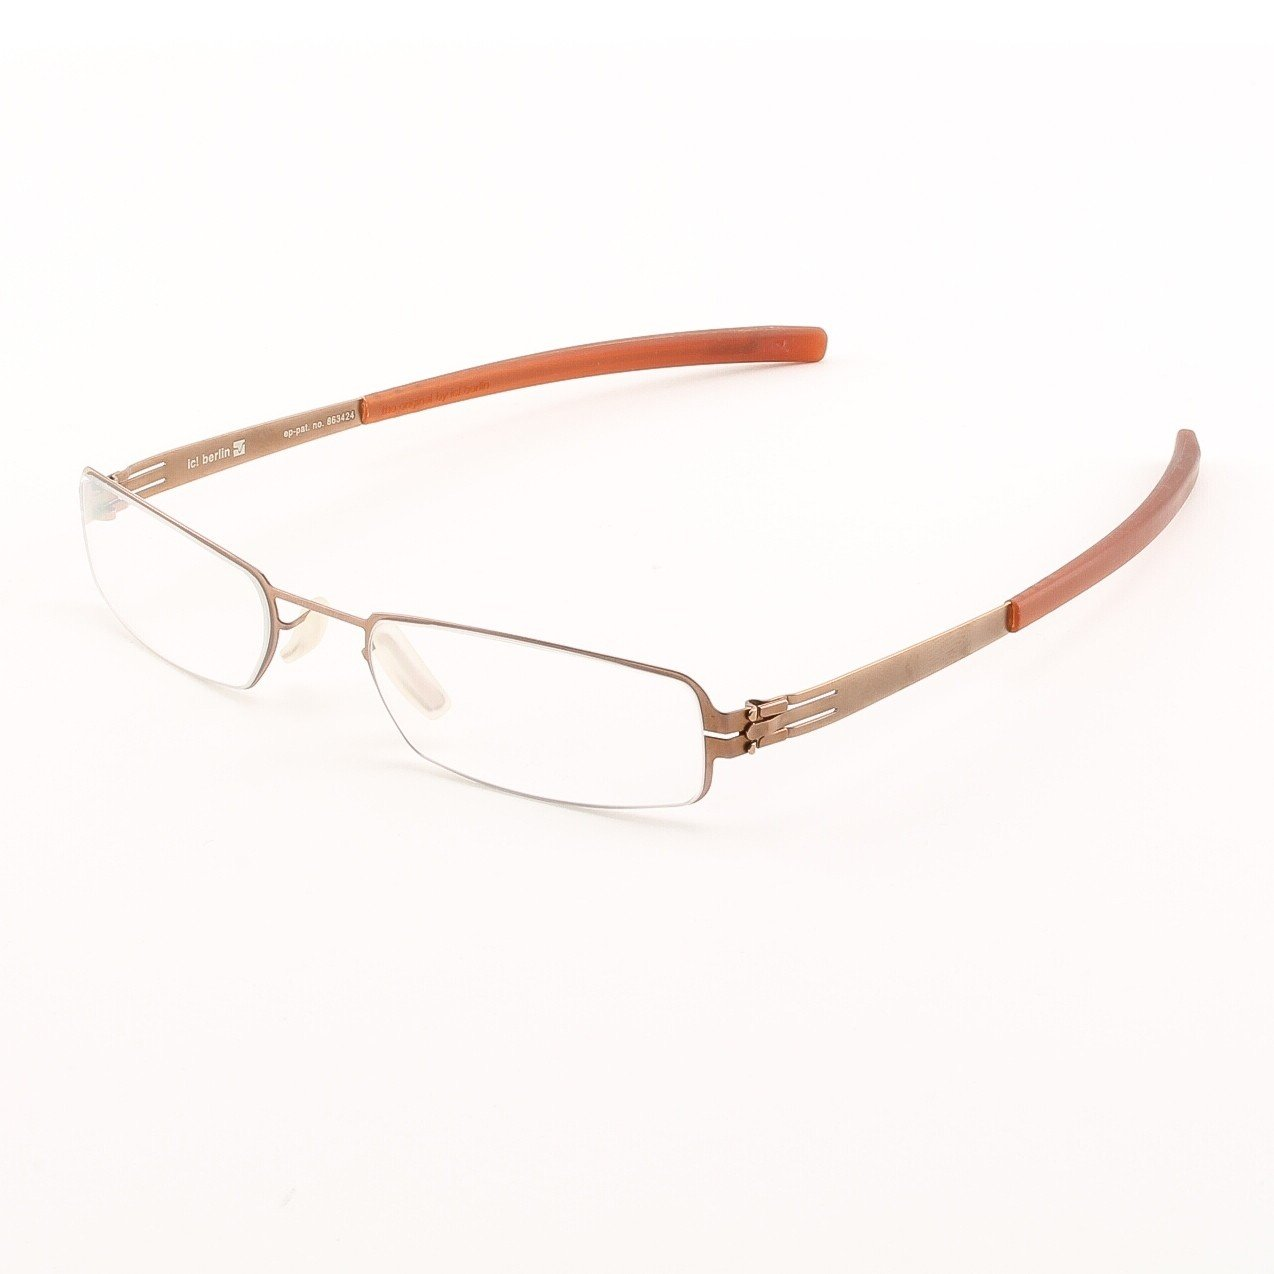 ic! Berlin Edvin Eyeglasses Col. Copper with Clear Lenses